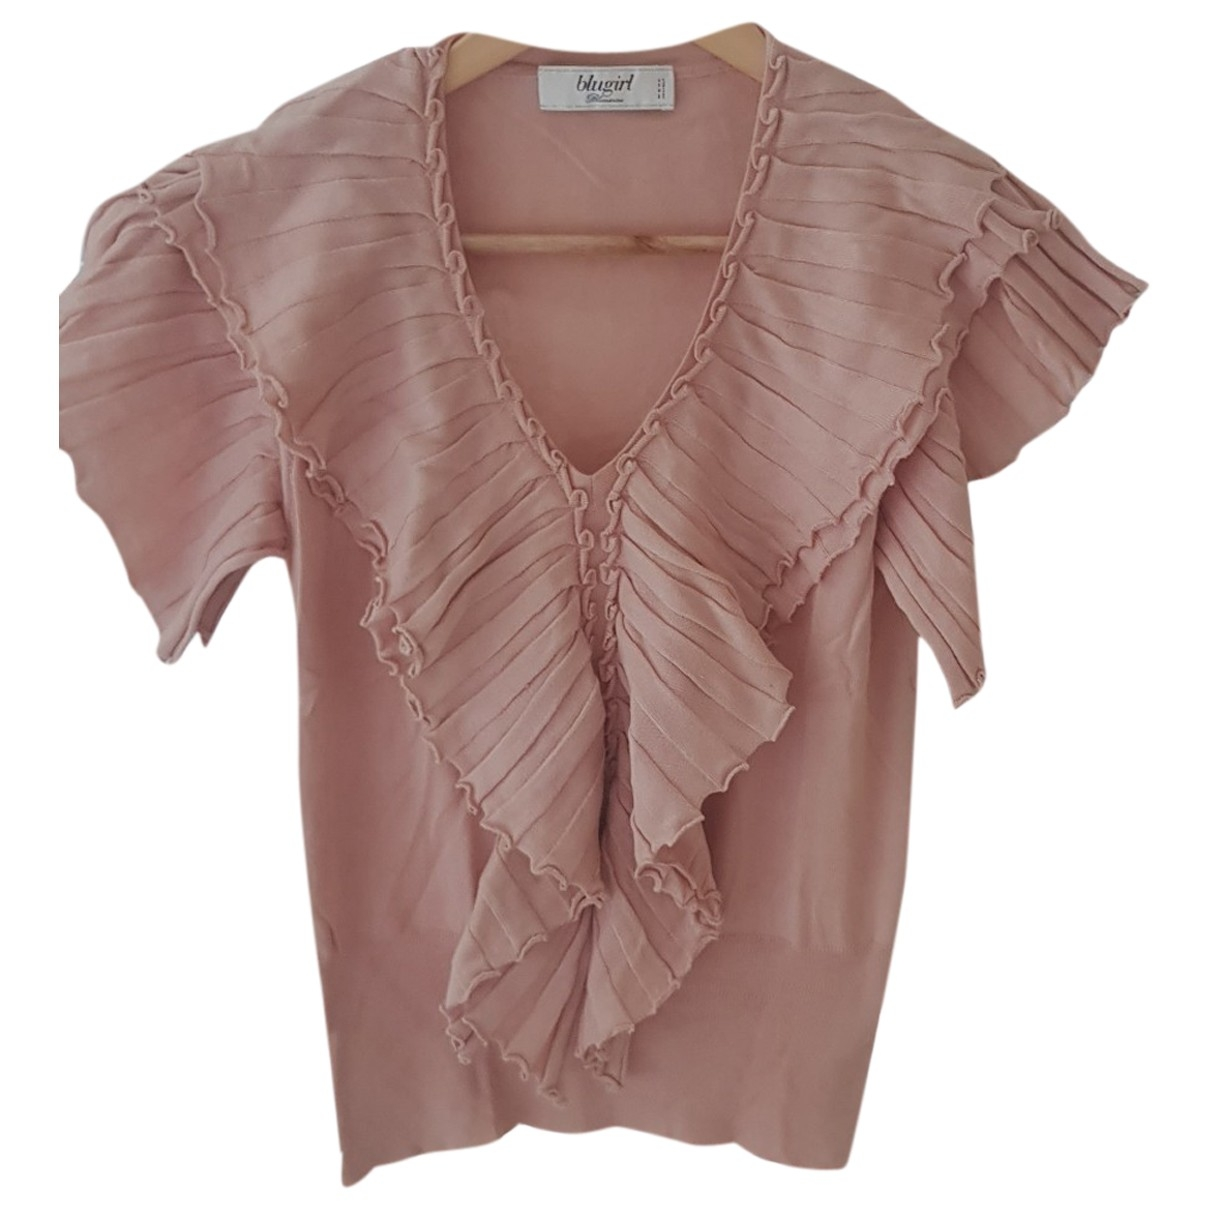 Blumarine \N Pink Cotton  top for Women M International